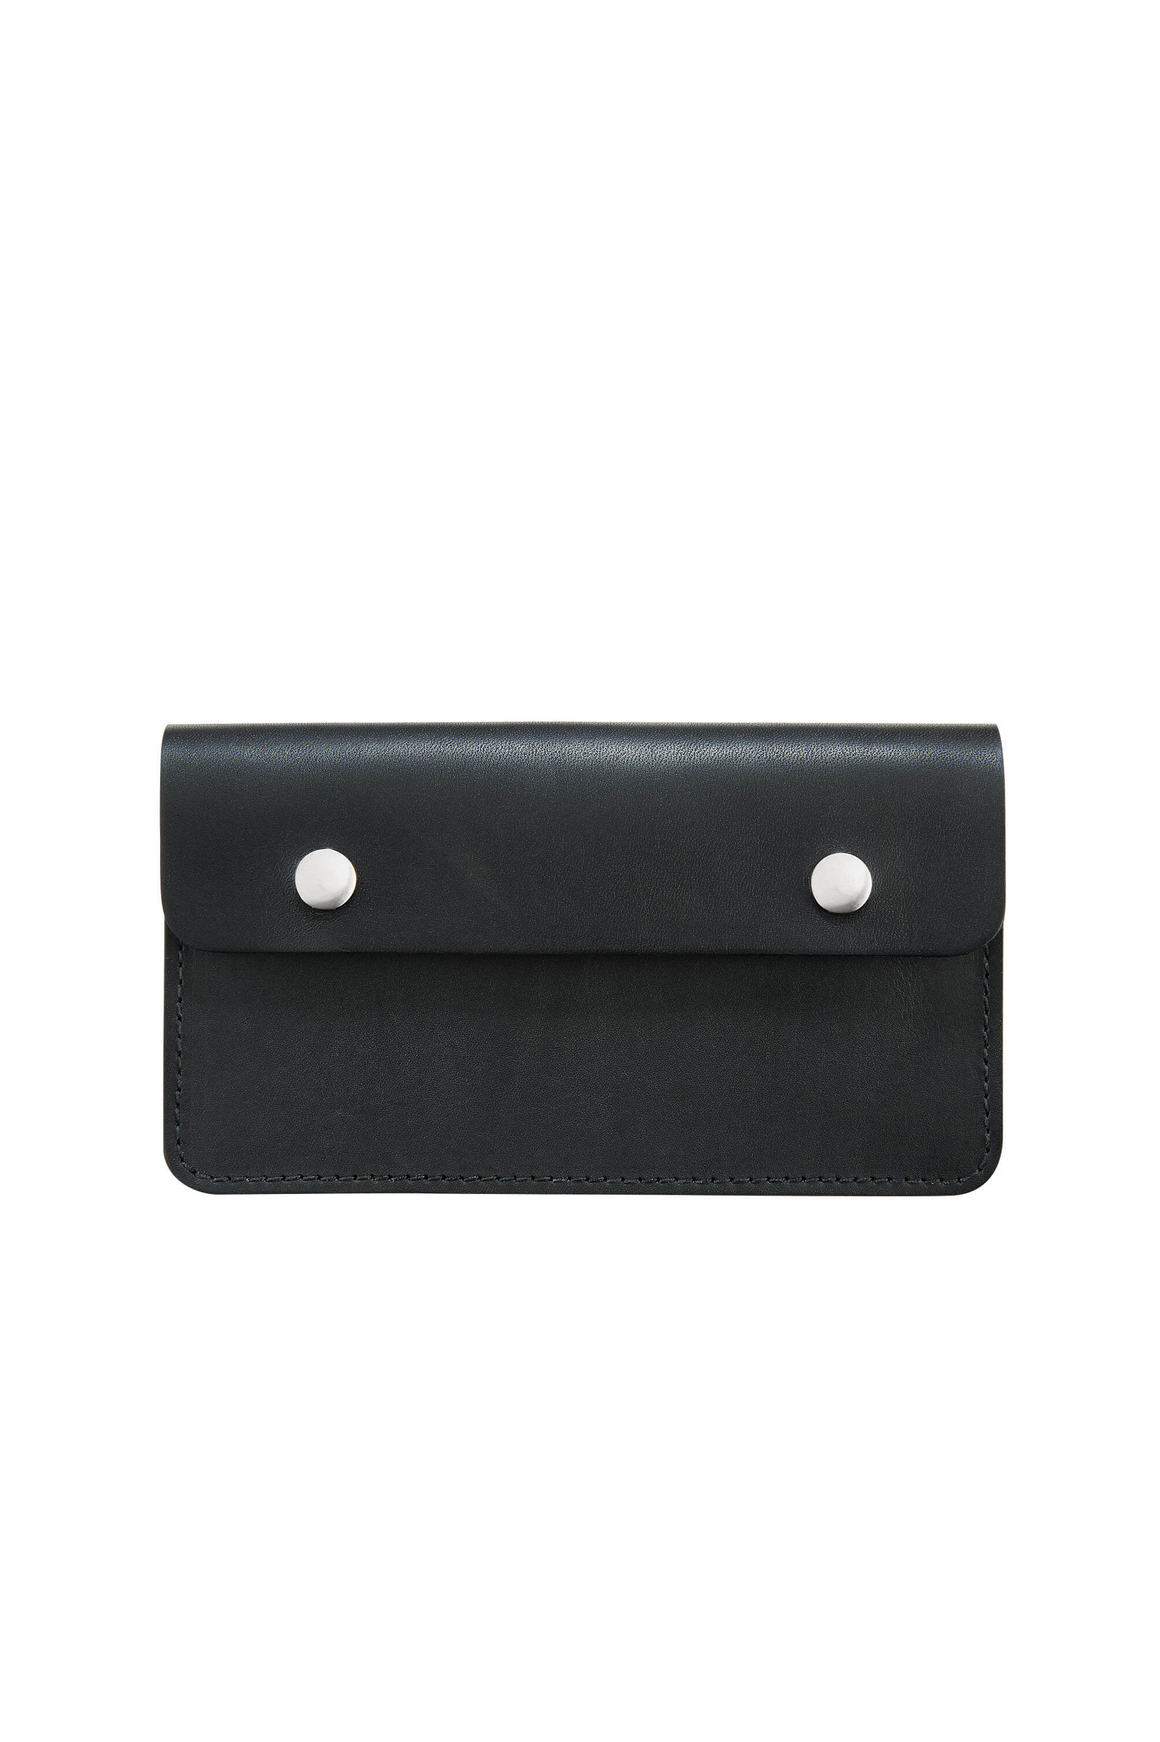 Trucker Wallet in Black Frontier - Philistine